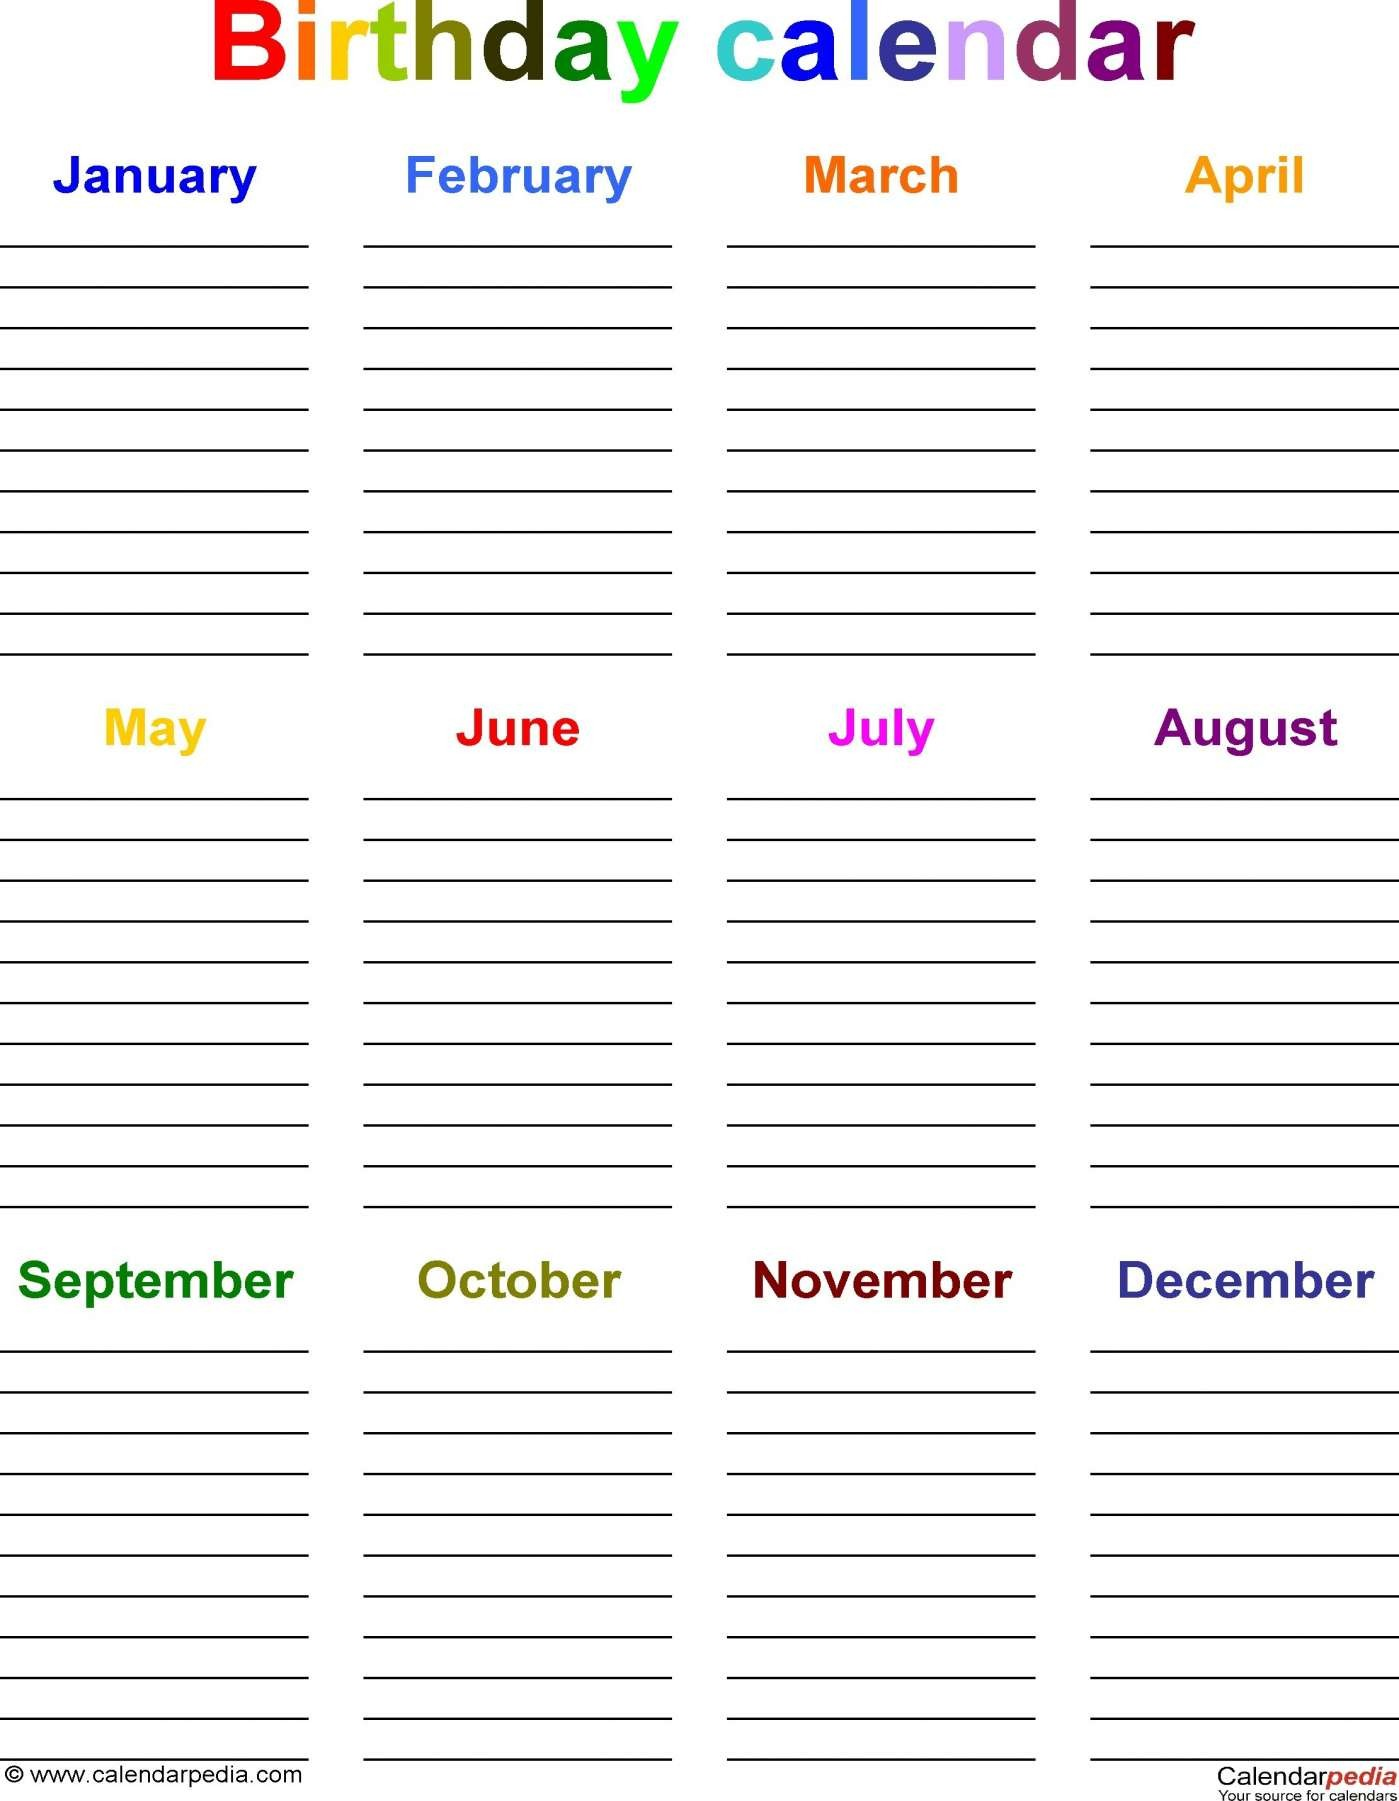 March Calendar 2019 Más Arriba-a-fecha Monthly Birthday Calendar Template Indiansocial Of March Calendar 2019 Mejores Y Más Novedosos 30 Day Calendar Template Awesome Calendar 1 April 2018 to 31 March